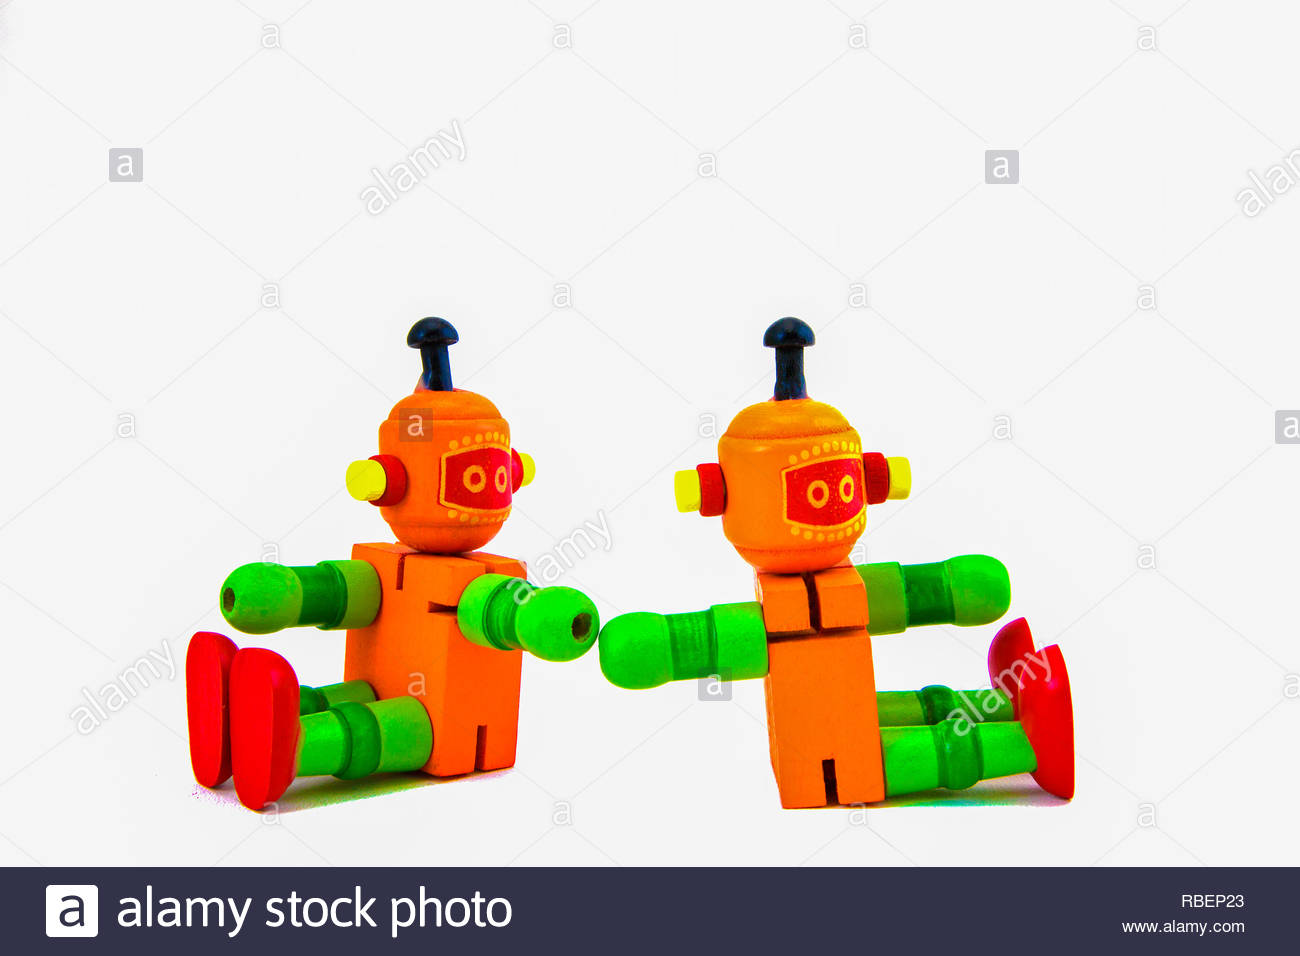 Studio shot of two sitting orange and green wooden toy robots facing away from each other but reaching out. Copy space on a white background. - Stock Image